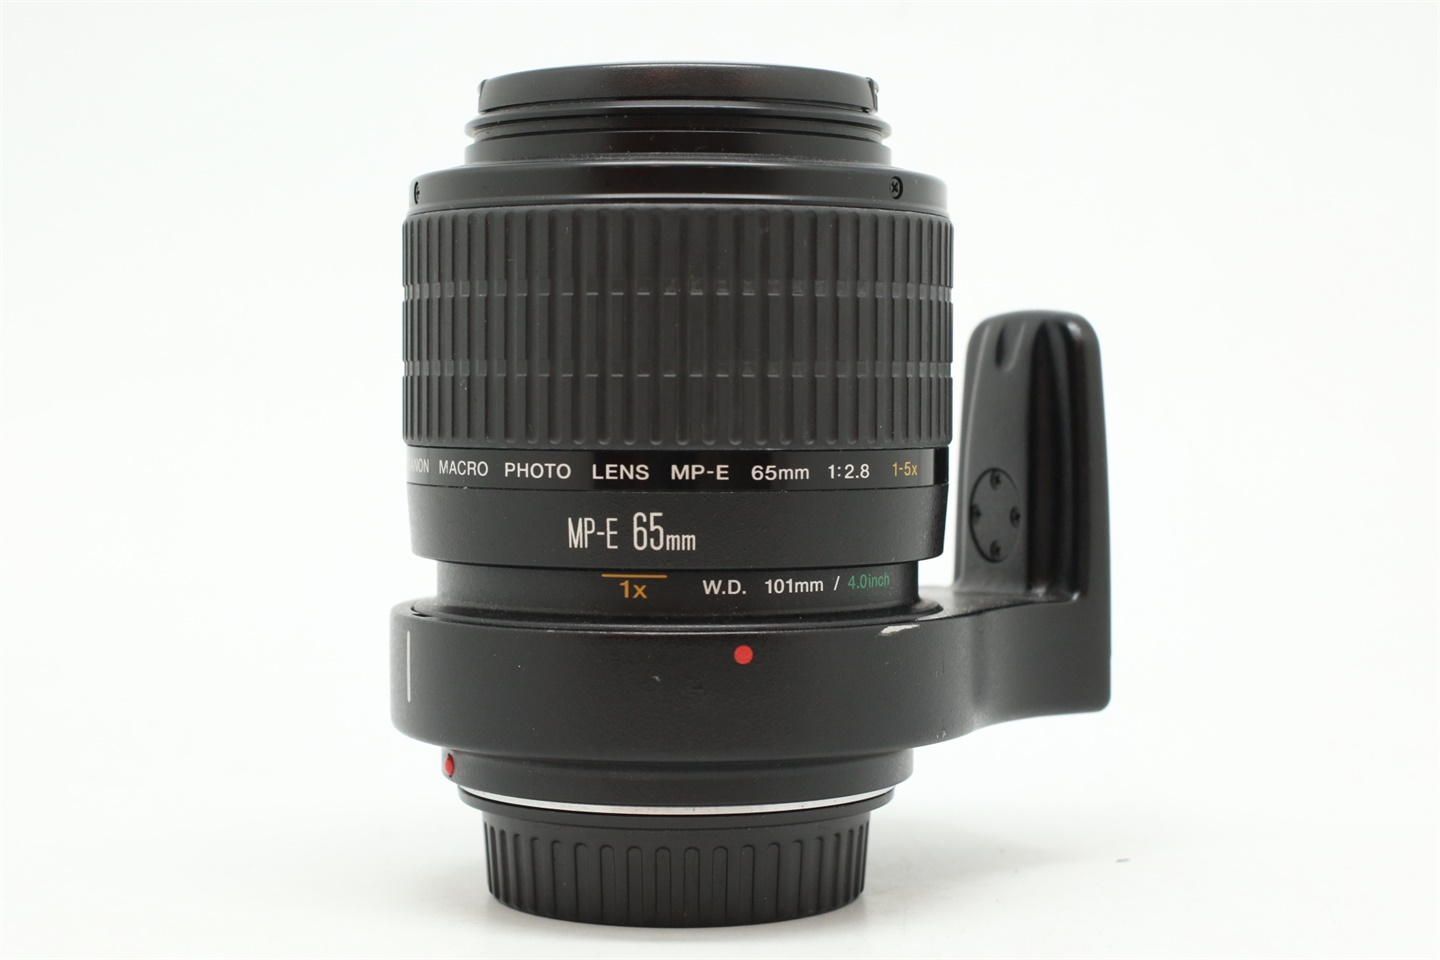 [USED-PUDU] CANON MP-E 65MM F2.8 MACRO LENS 90%LIKE NEW CONDITION SN:122990